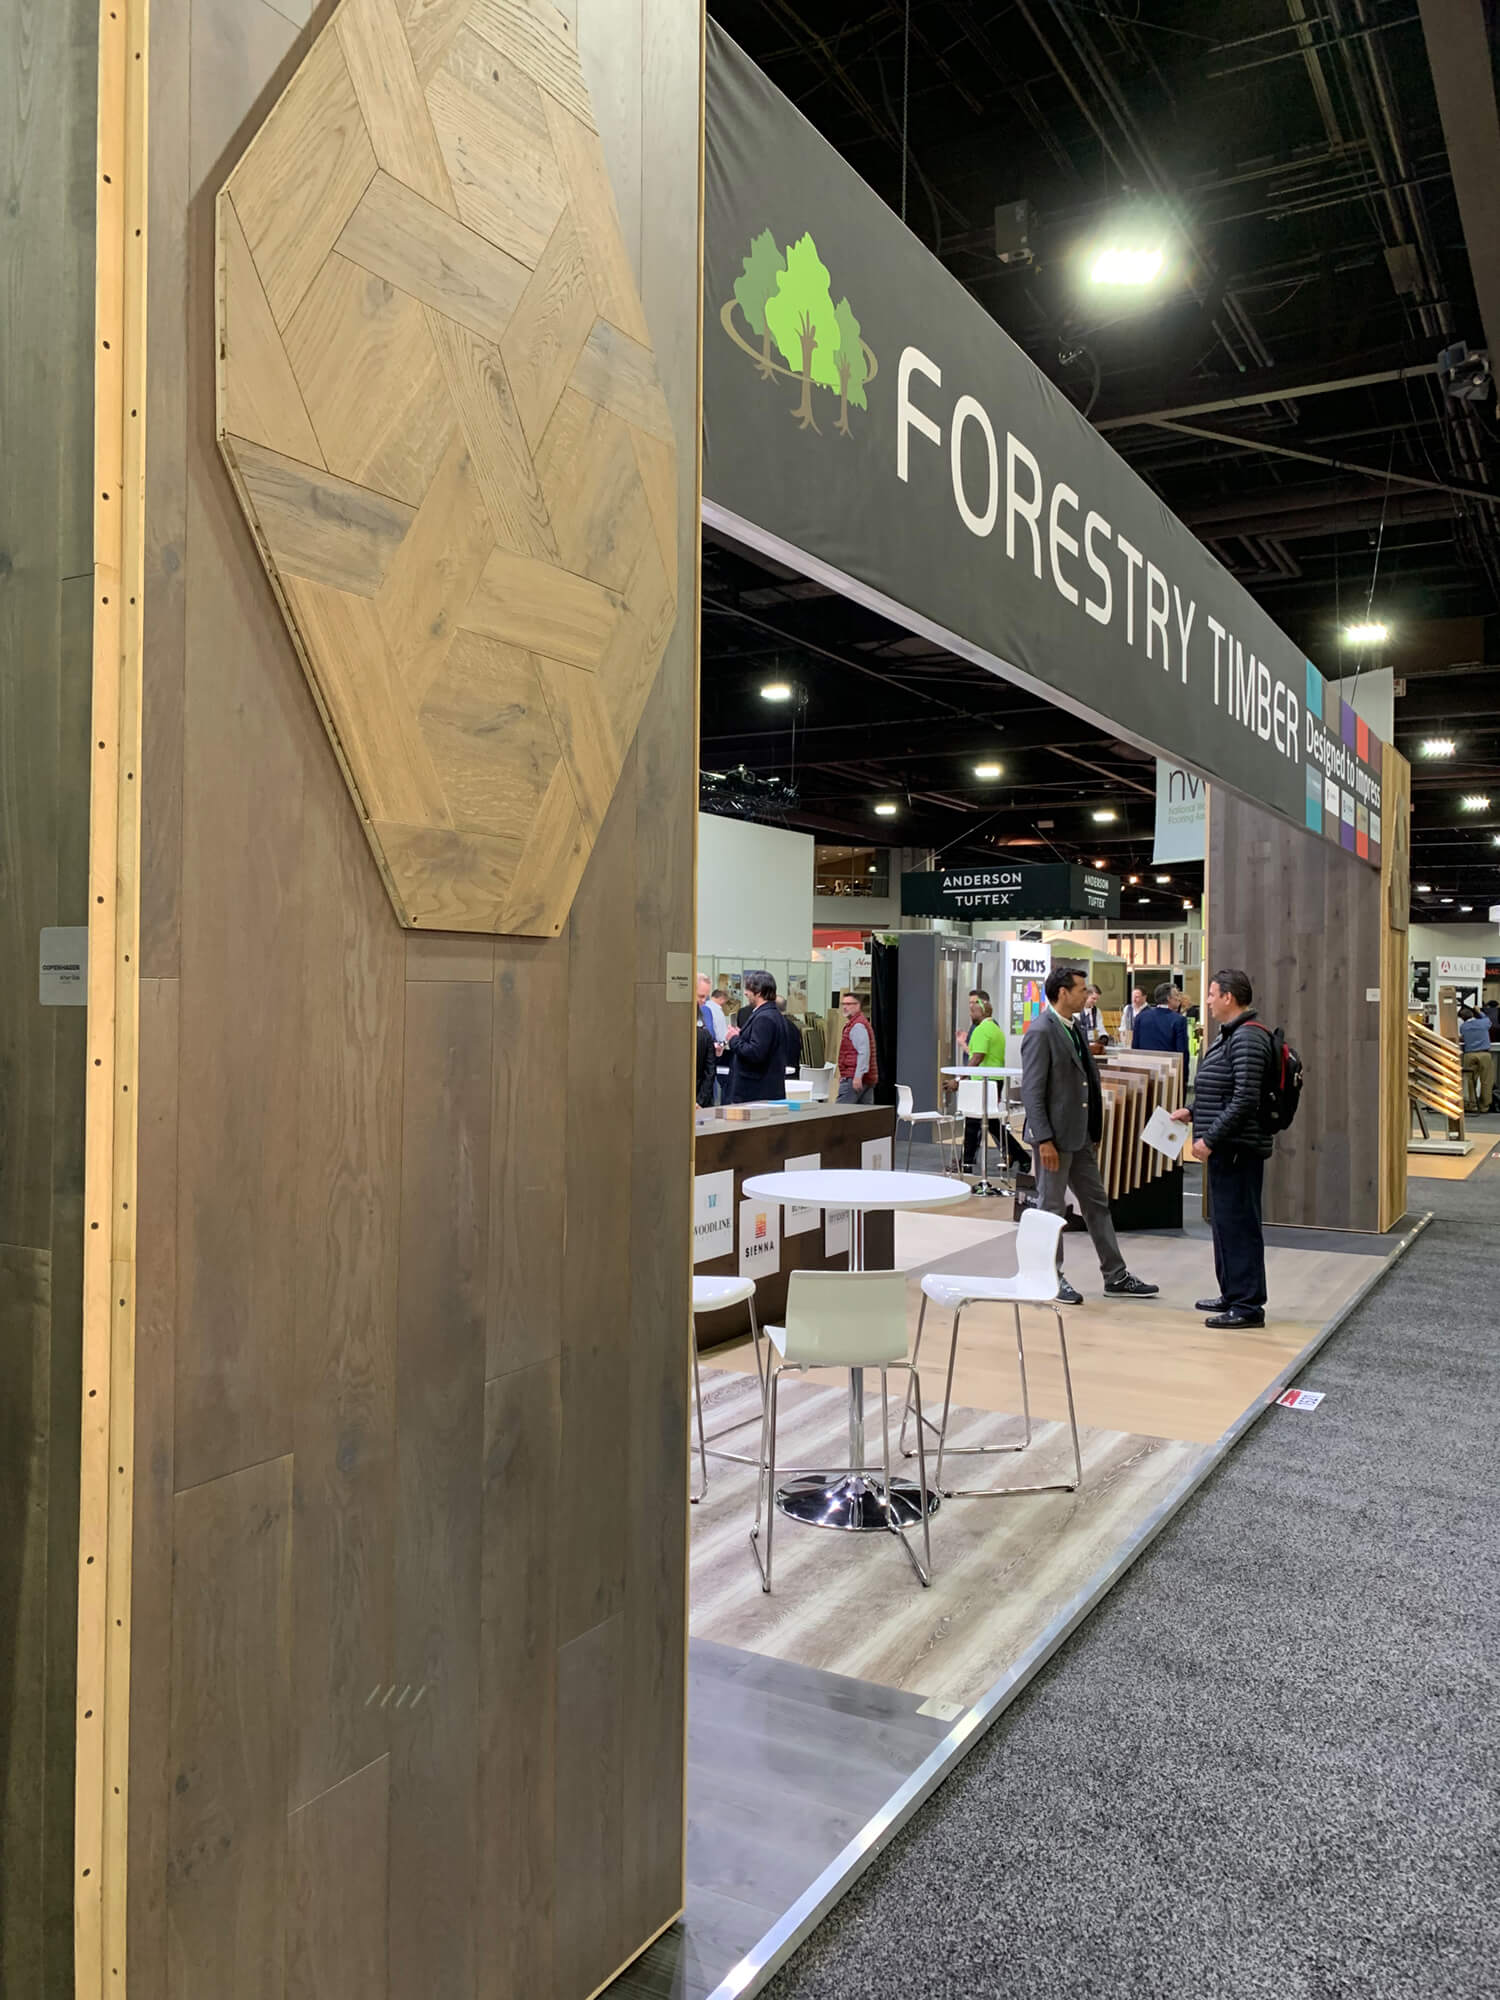 Domotex Exhibition Atlanta 2019 Forestry Timber-02